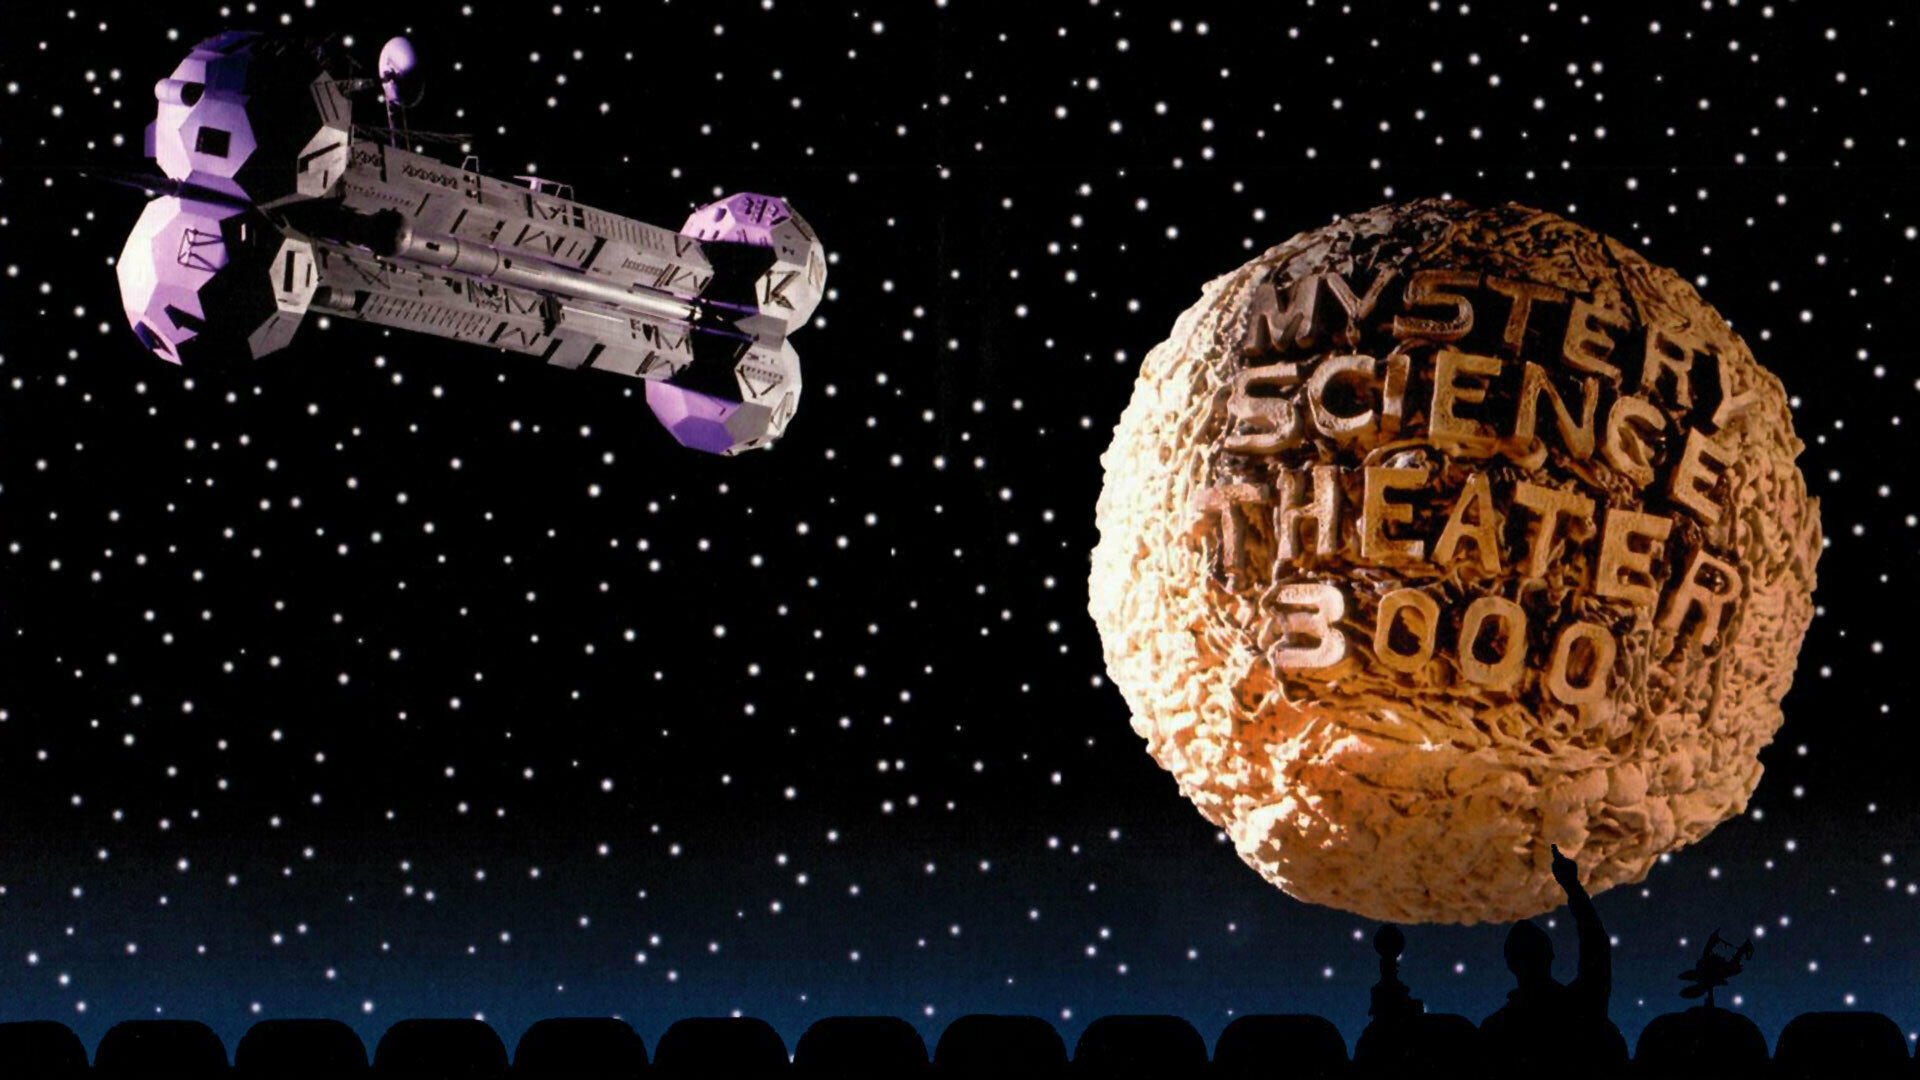 mystery science theater 3000 wikiquote - HD1920×1080